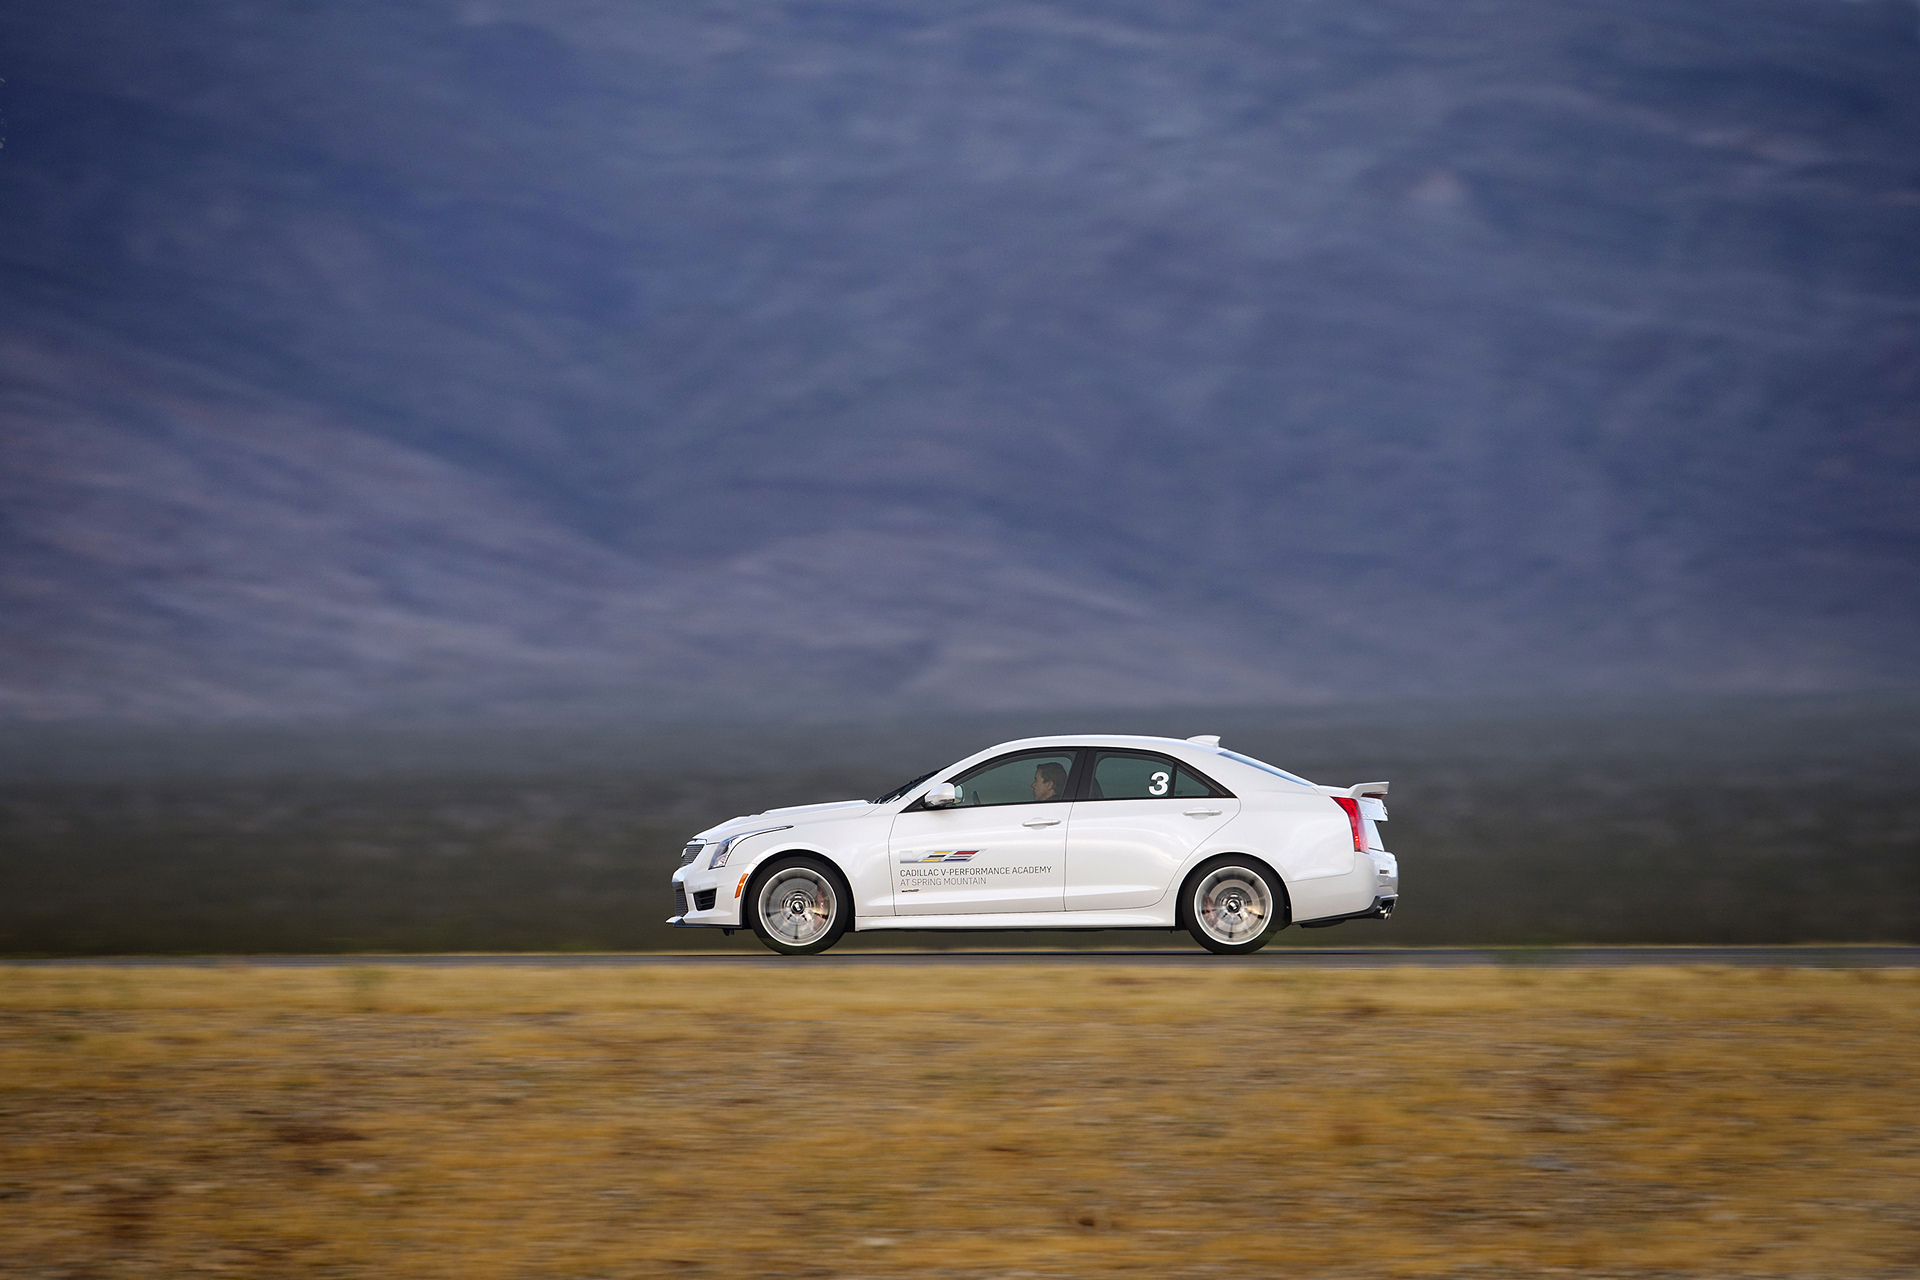 The Cadillac ATS-V Coupe at the Cadillac V-Performance Academy © General Motors